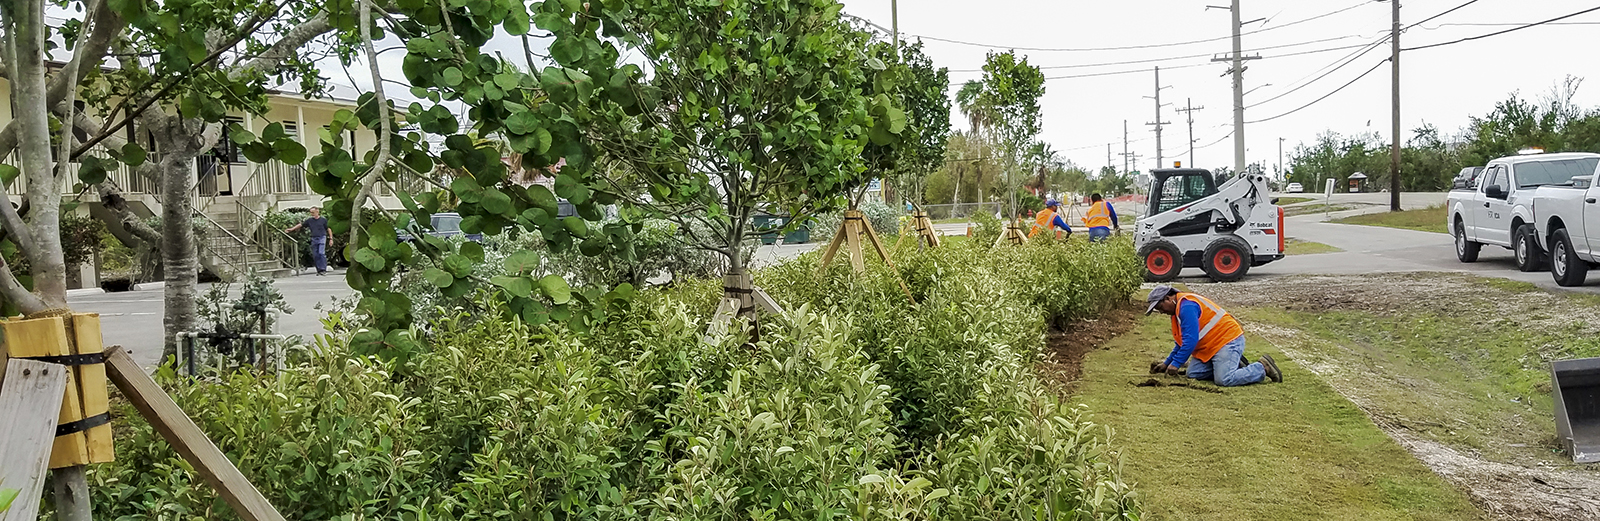 Landscape Planting along SR 5/Overseas Highway in Big Pine Key